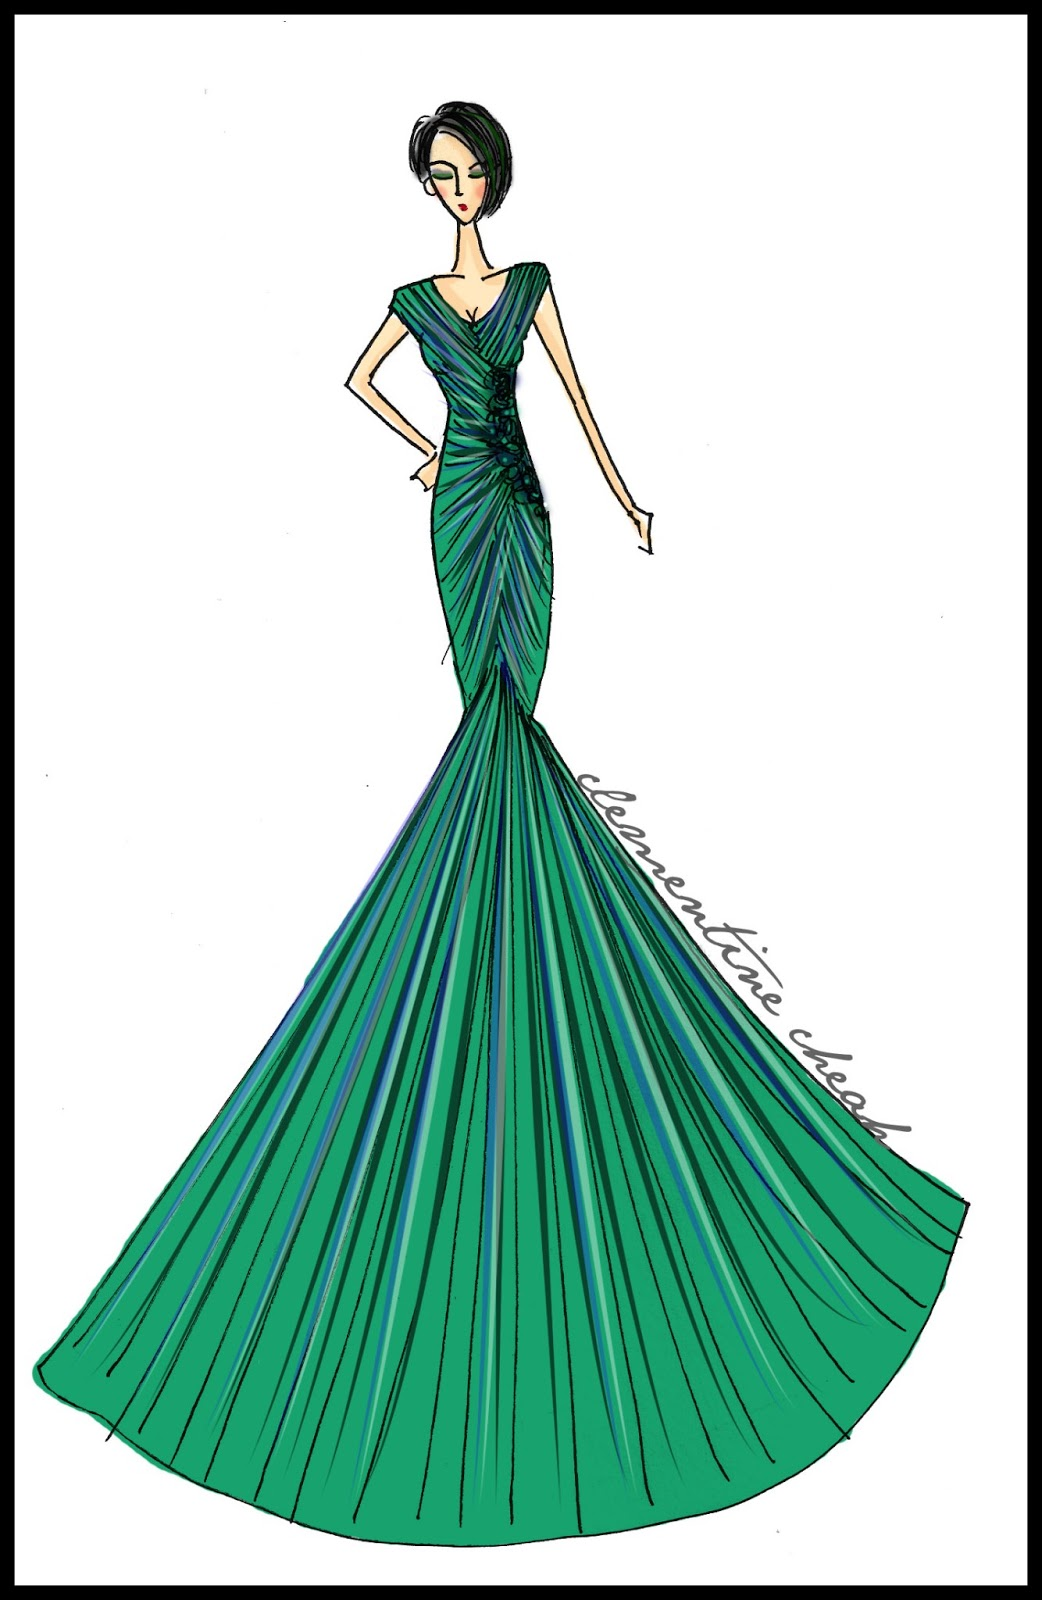 Clementine Cheah: Fashion Illustration : Green Evening Gown Sketched ...